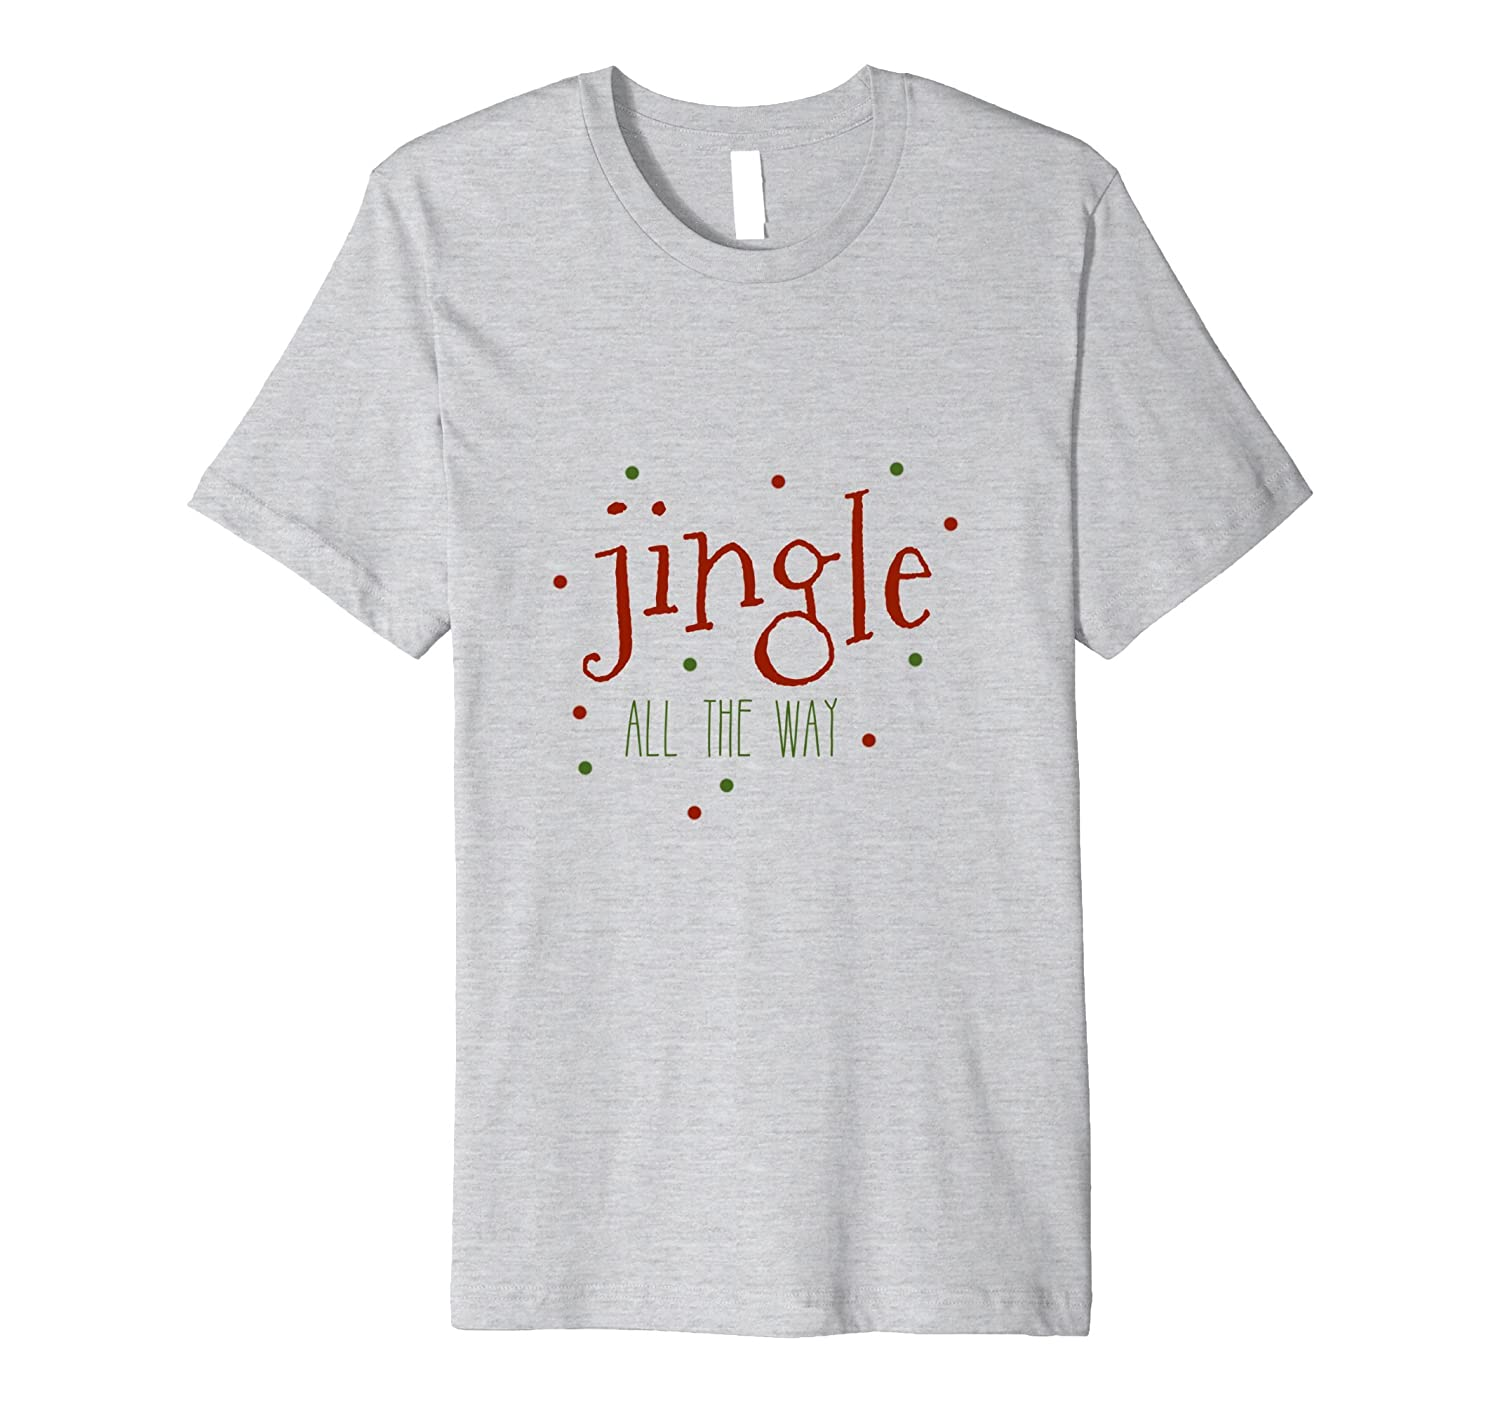 20bc47b8c Jingle All The Way Festive Christmas T-Shirt for Him or Her-ANZ ...